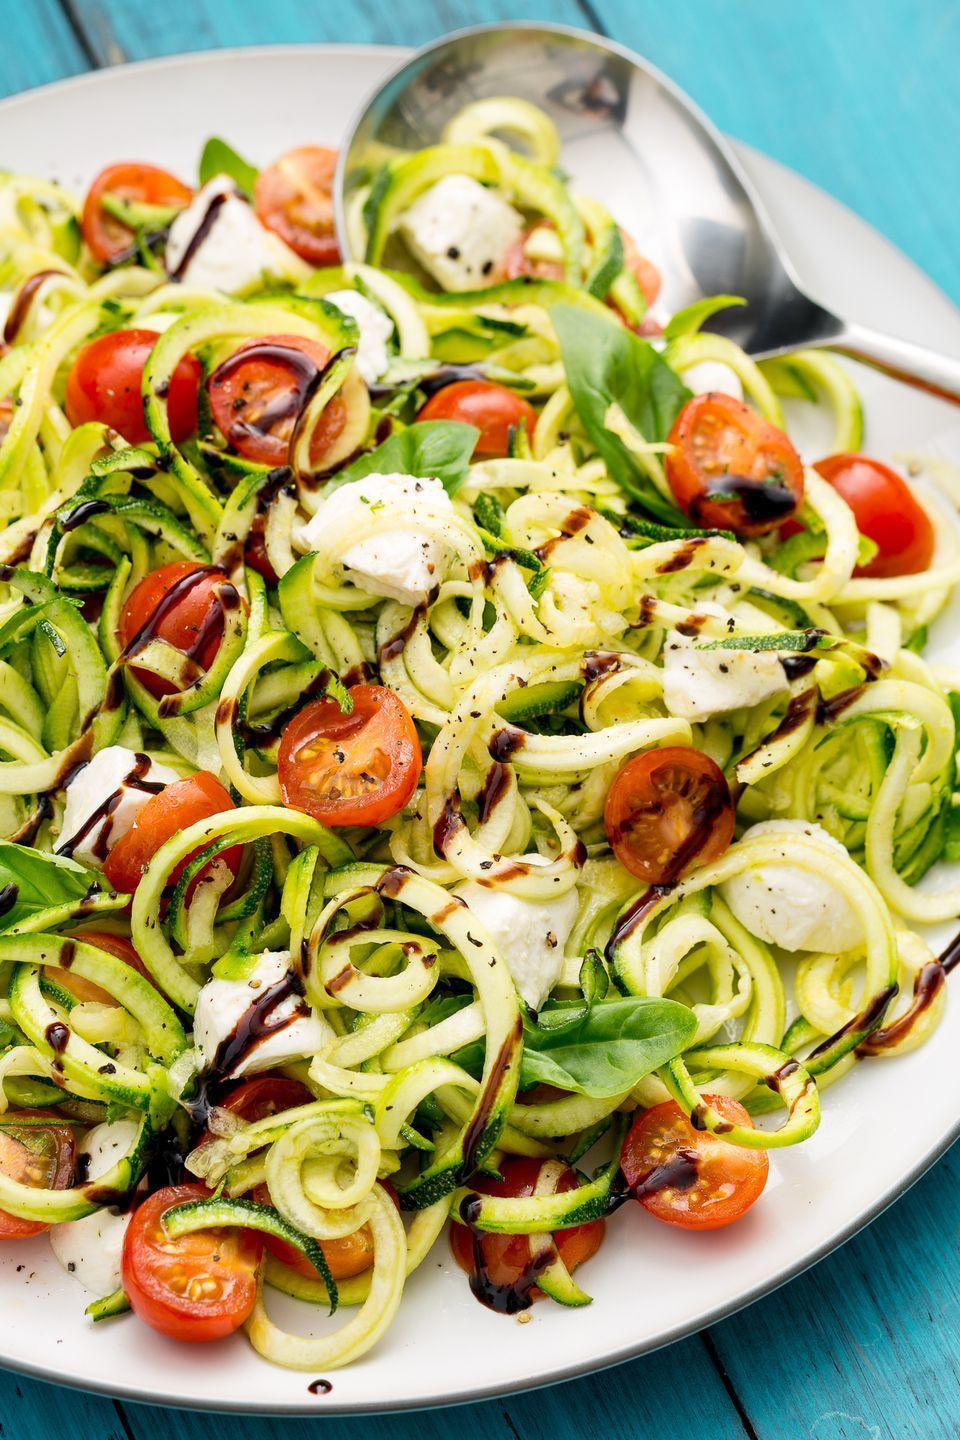 "<p>The Caprese salad your life is missing.</p><p>Get the recipe from <a href=""https://www.redbookmag.com/cooking/recipe-ideas/recipes/a47336/caprese-zoodles-recipe/"" rel=""nofollow noopener"" target=""_blank"" data-ylk=""slk:Delish"" class=""link rapid-noclick-resp"">Delish</a>.<br></p>"